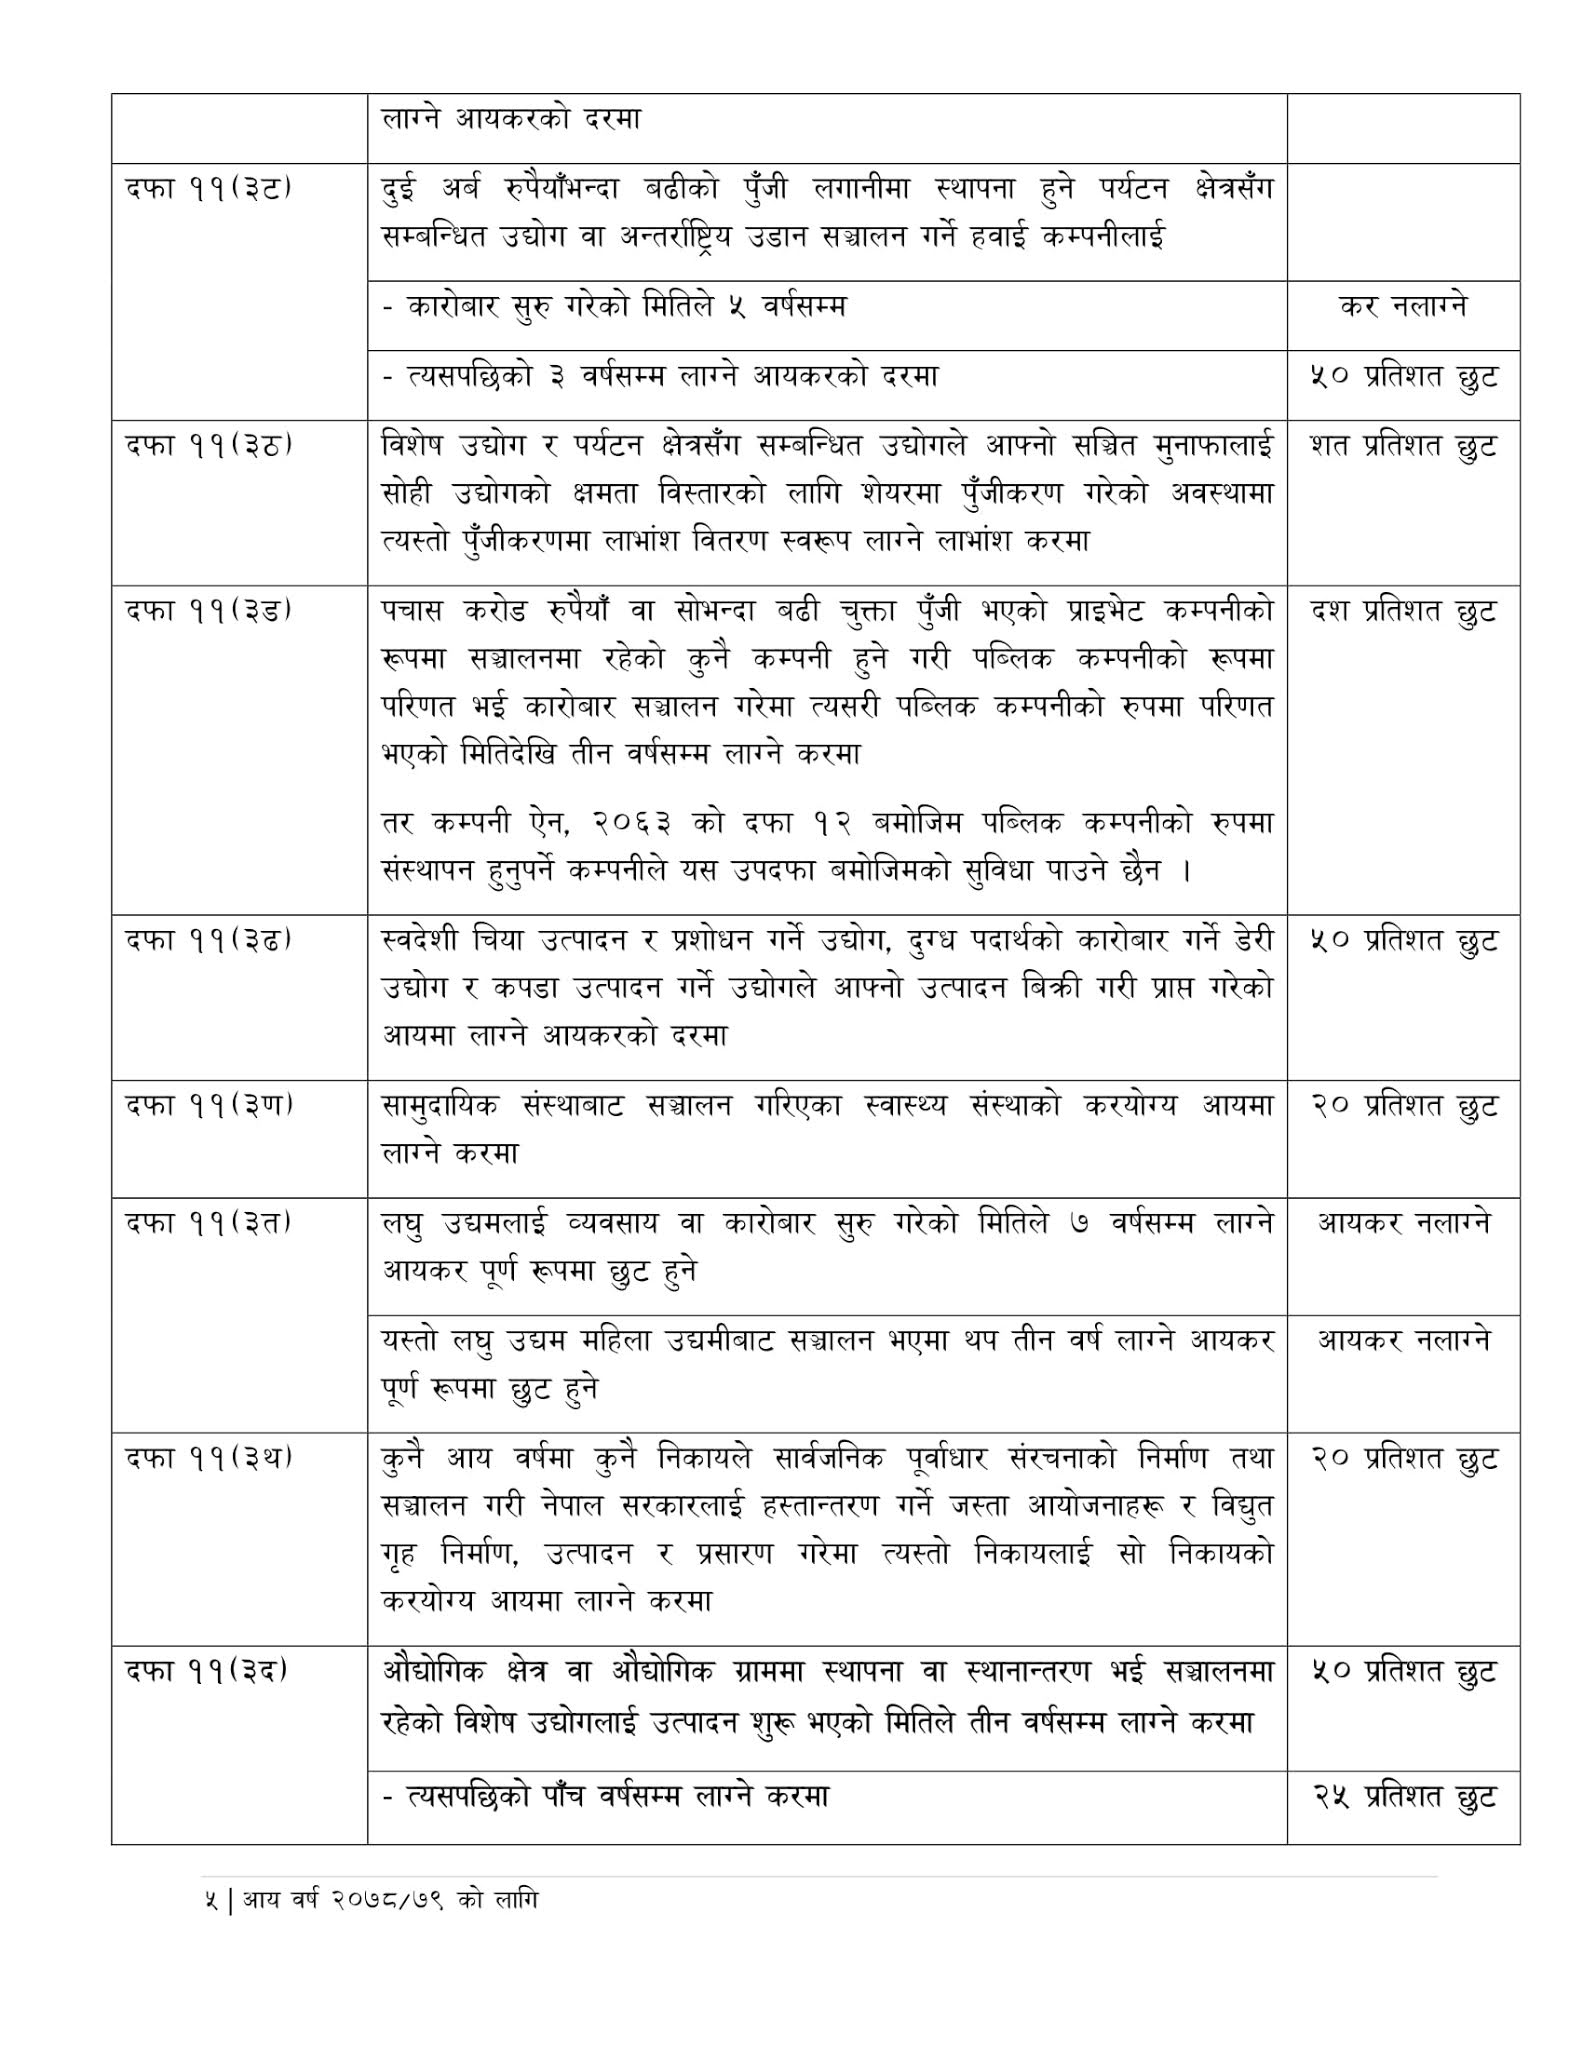 Government of Nepal Business Tax Exemptions and Facilities in Nepal for 2078/79